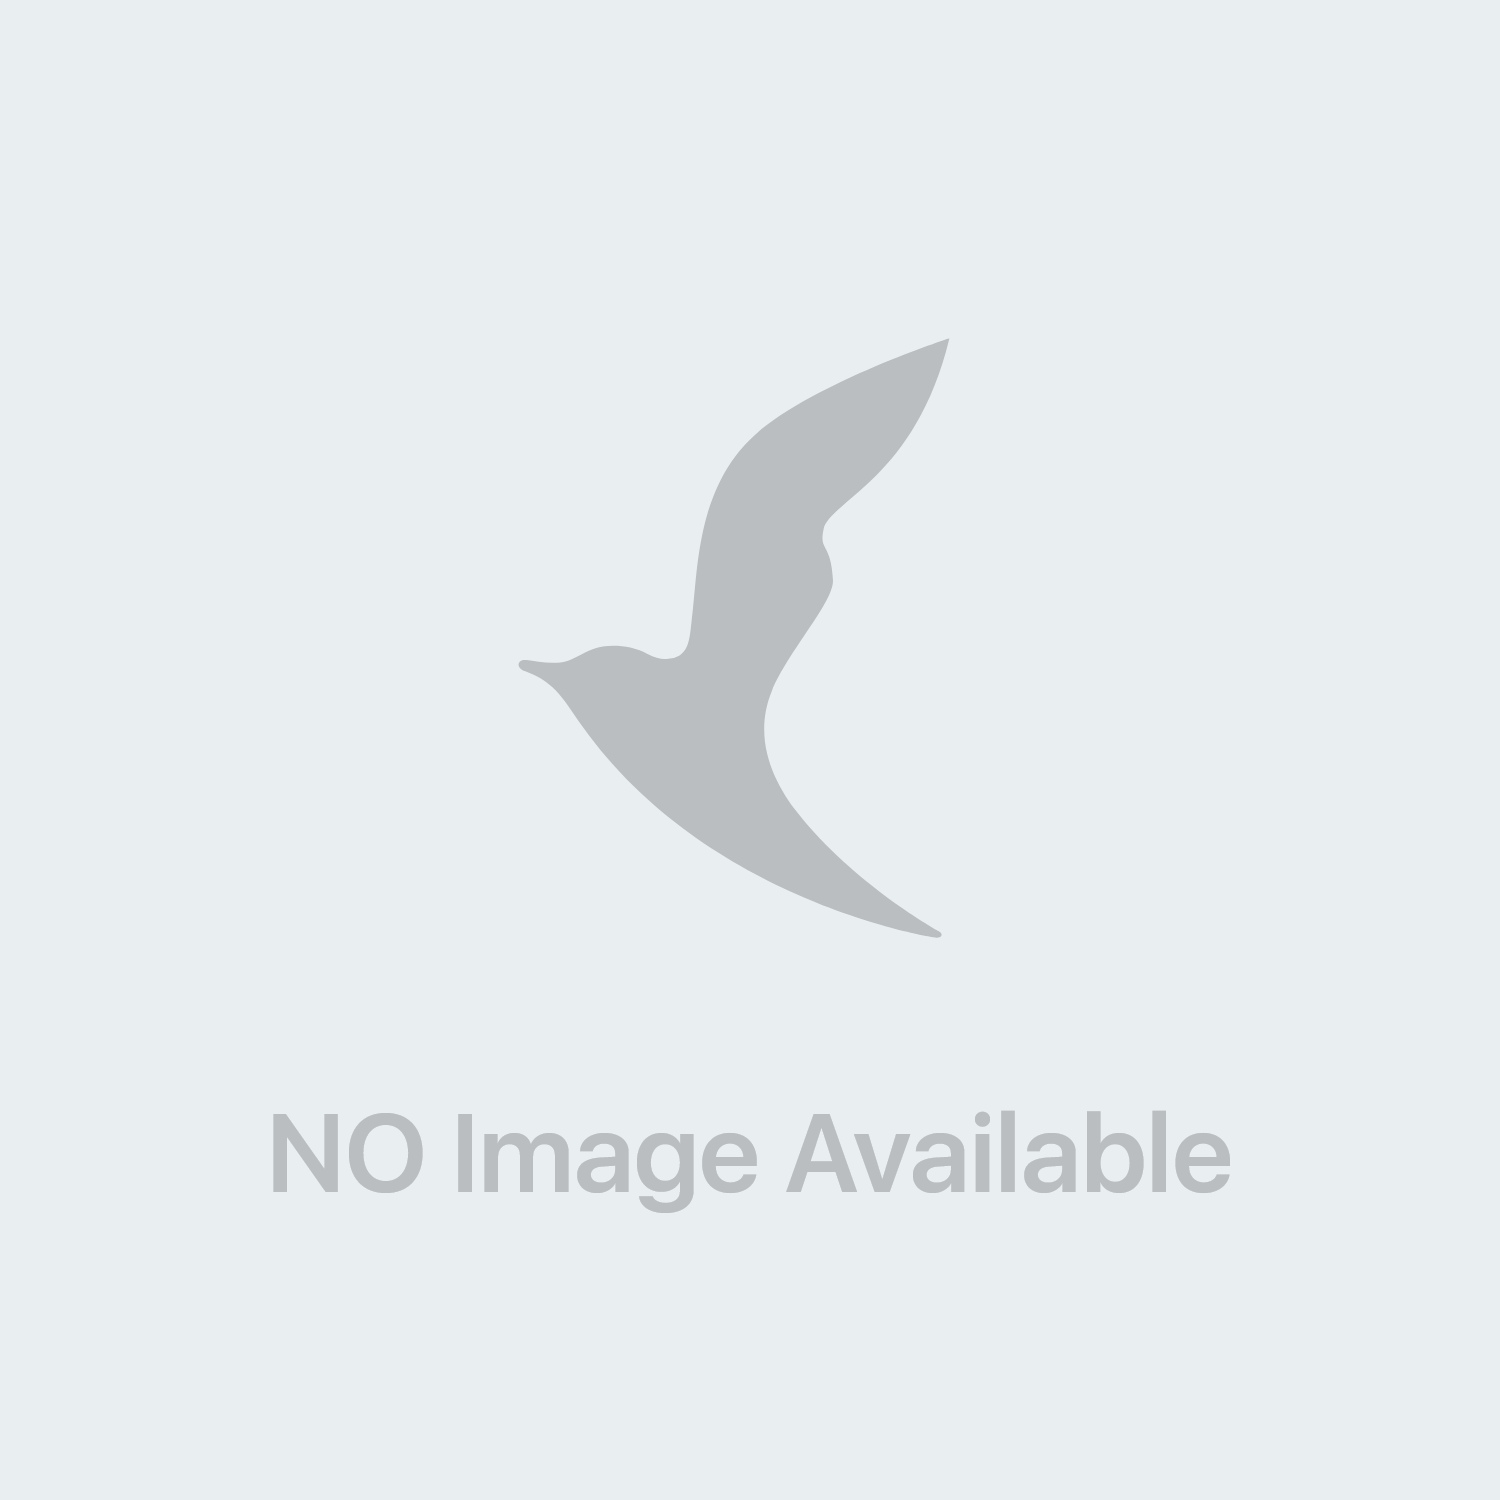 Zidoval Gel Vaginale 40 grammi 0,75% + 5 Applicatori